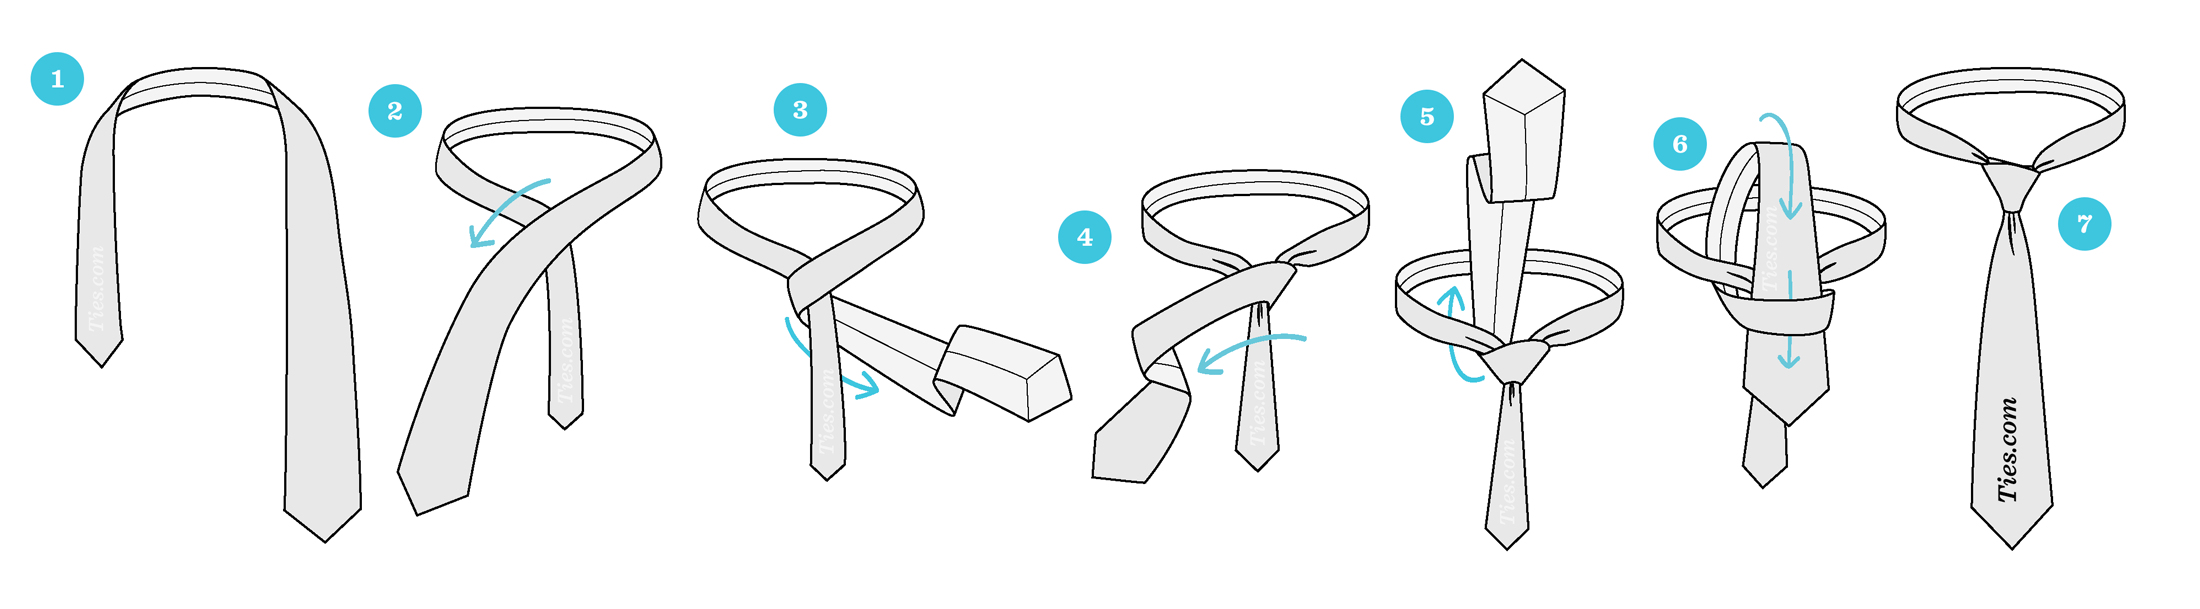 The easiest way to tie a tie ties how to easily tie a tie by yourself ccuart Gallery